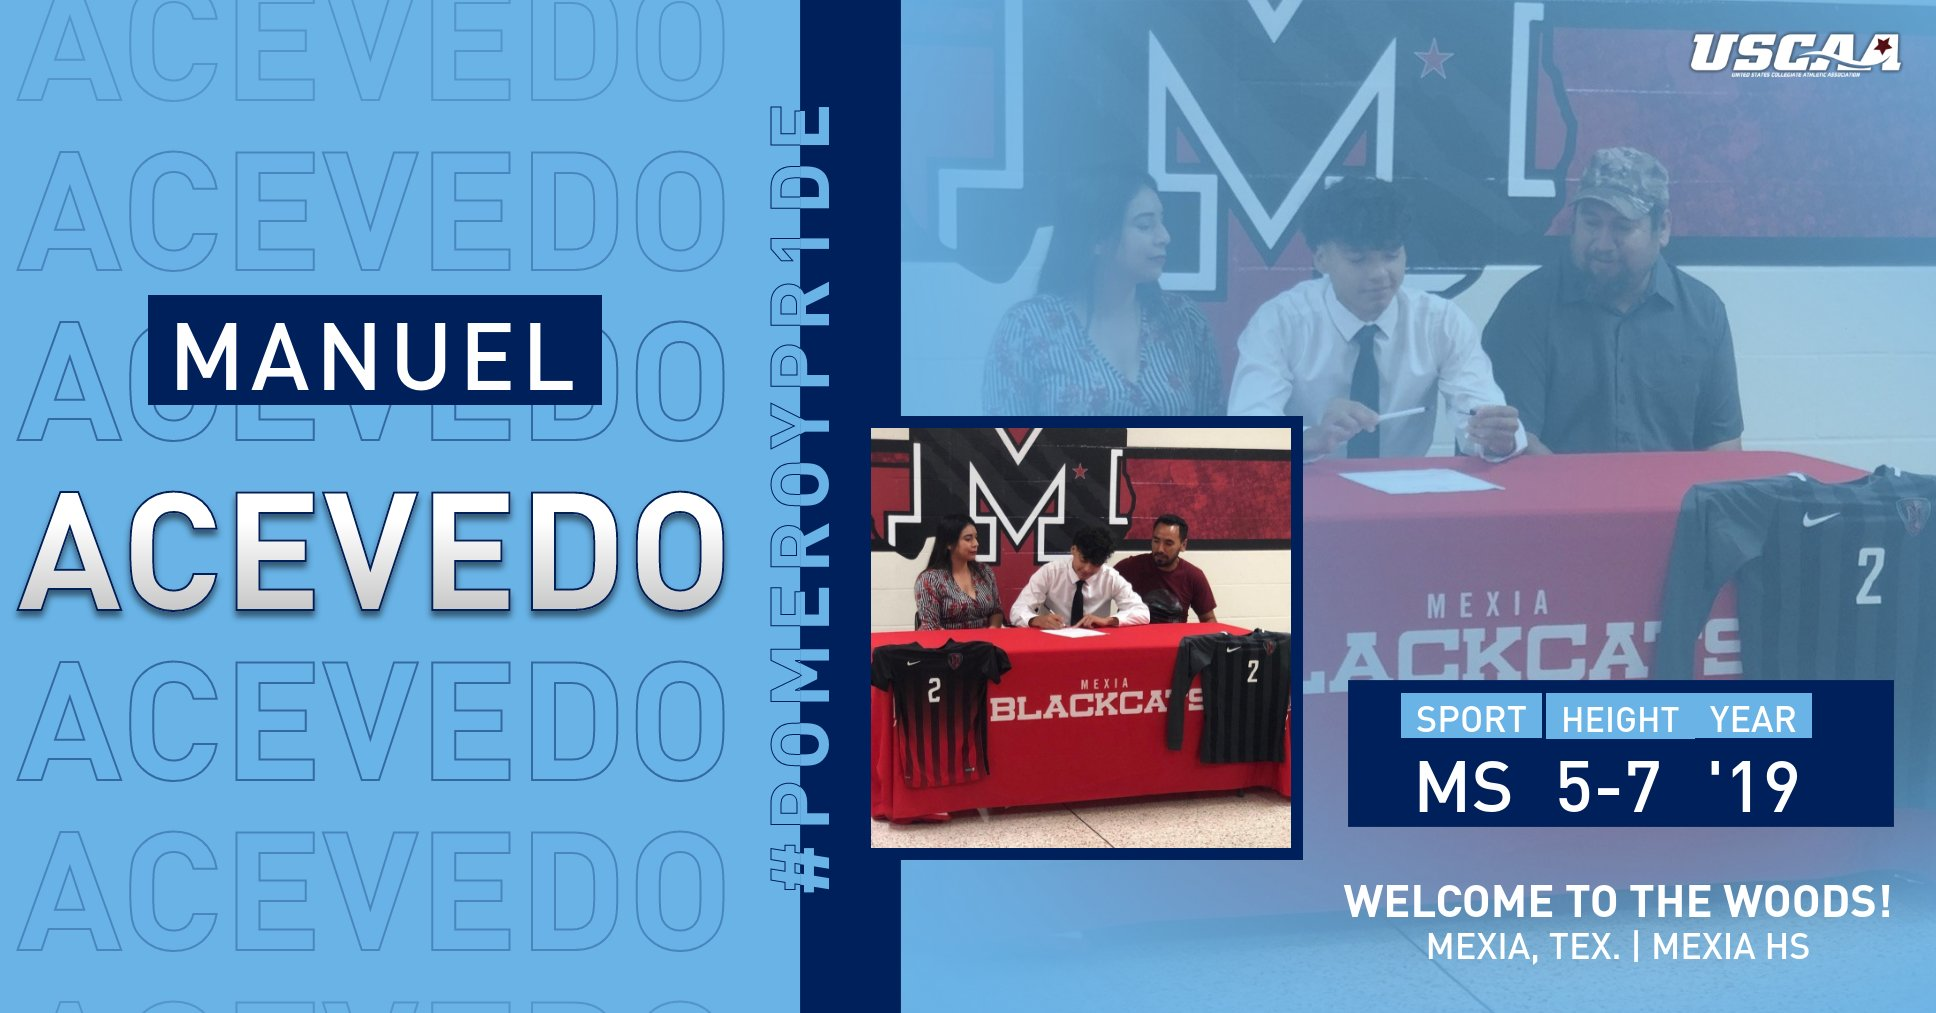 Men's Soccer Adds Mexia's Manuel Acevedo